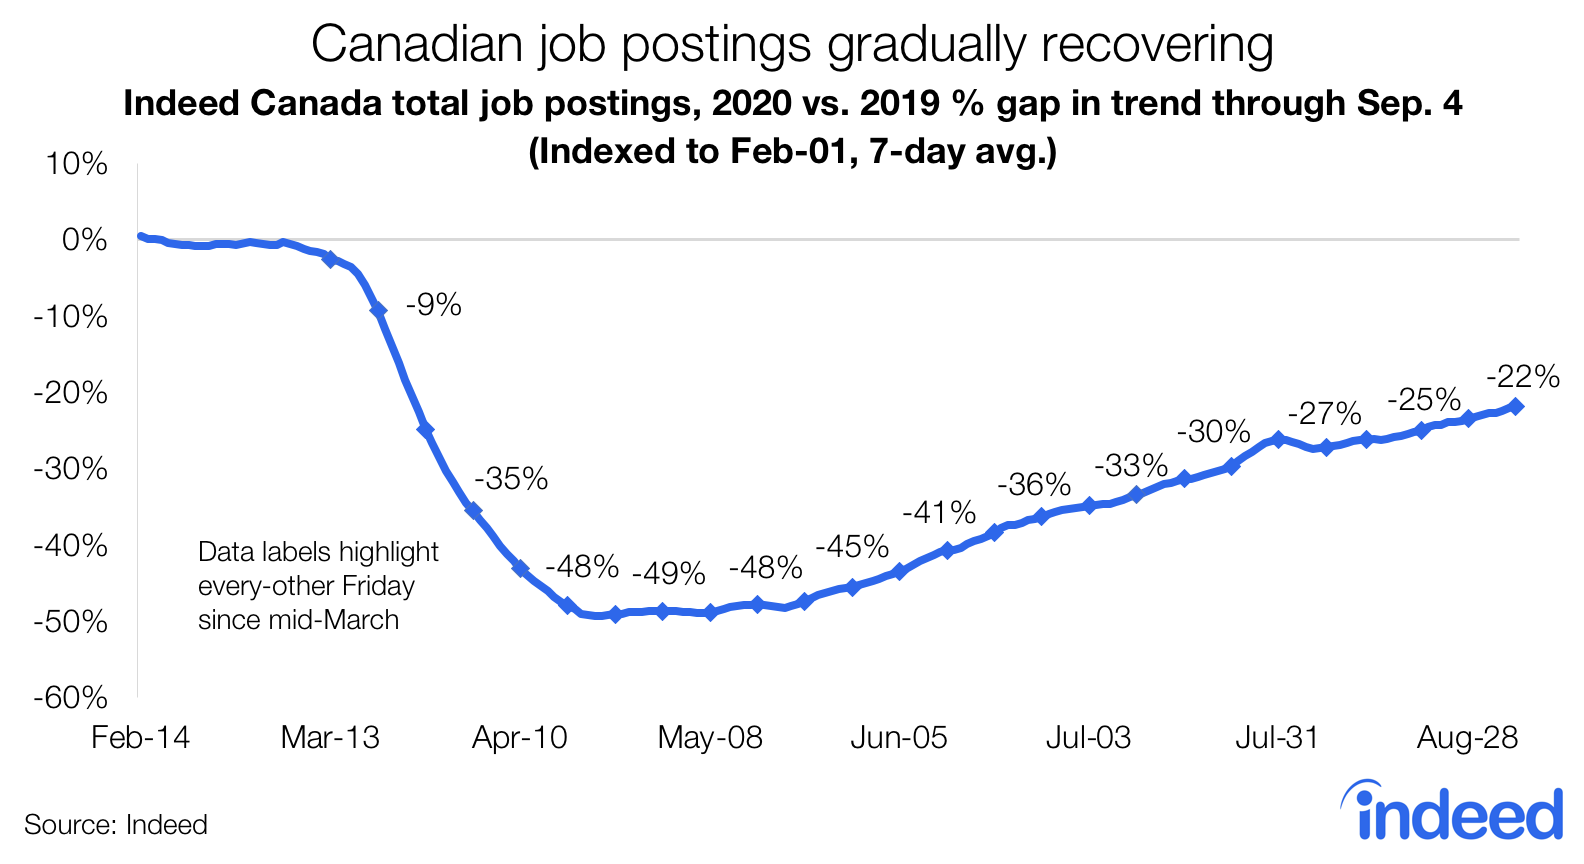 Line graph showing number of Canadian job postings gradually recovering since pandemic